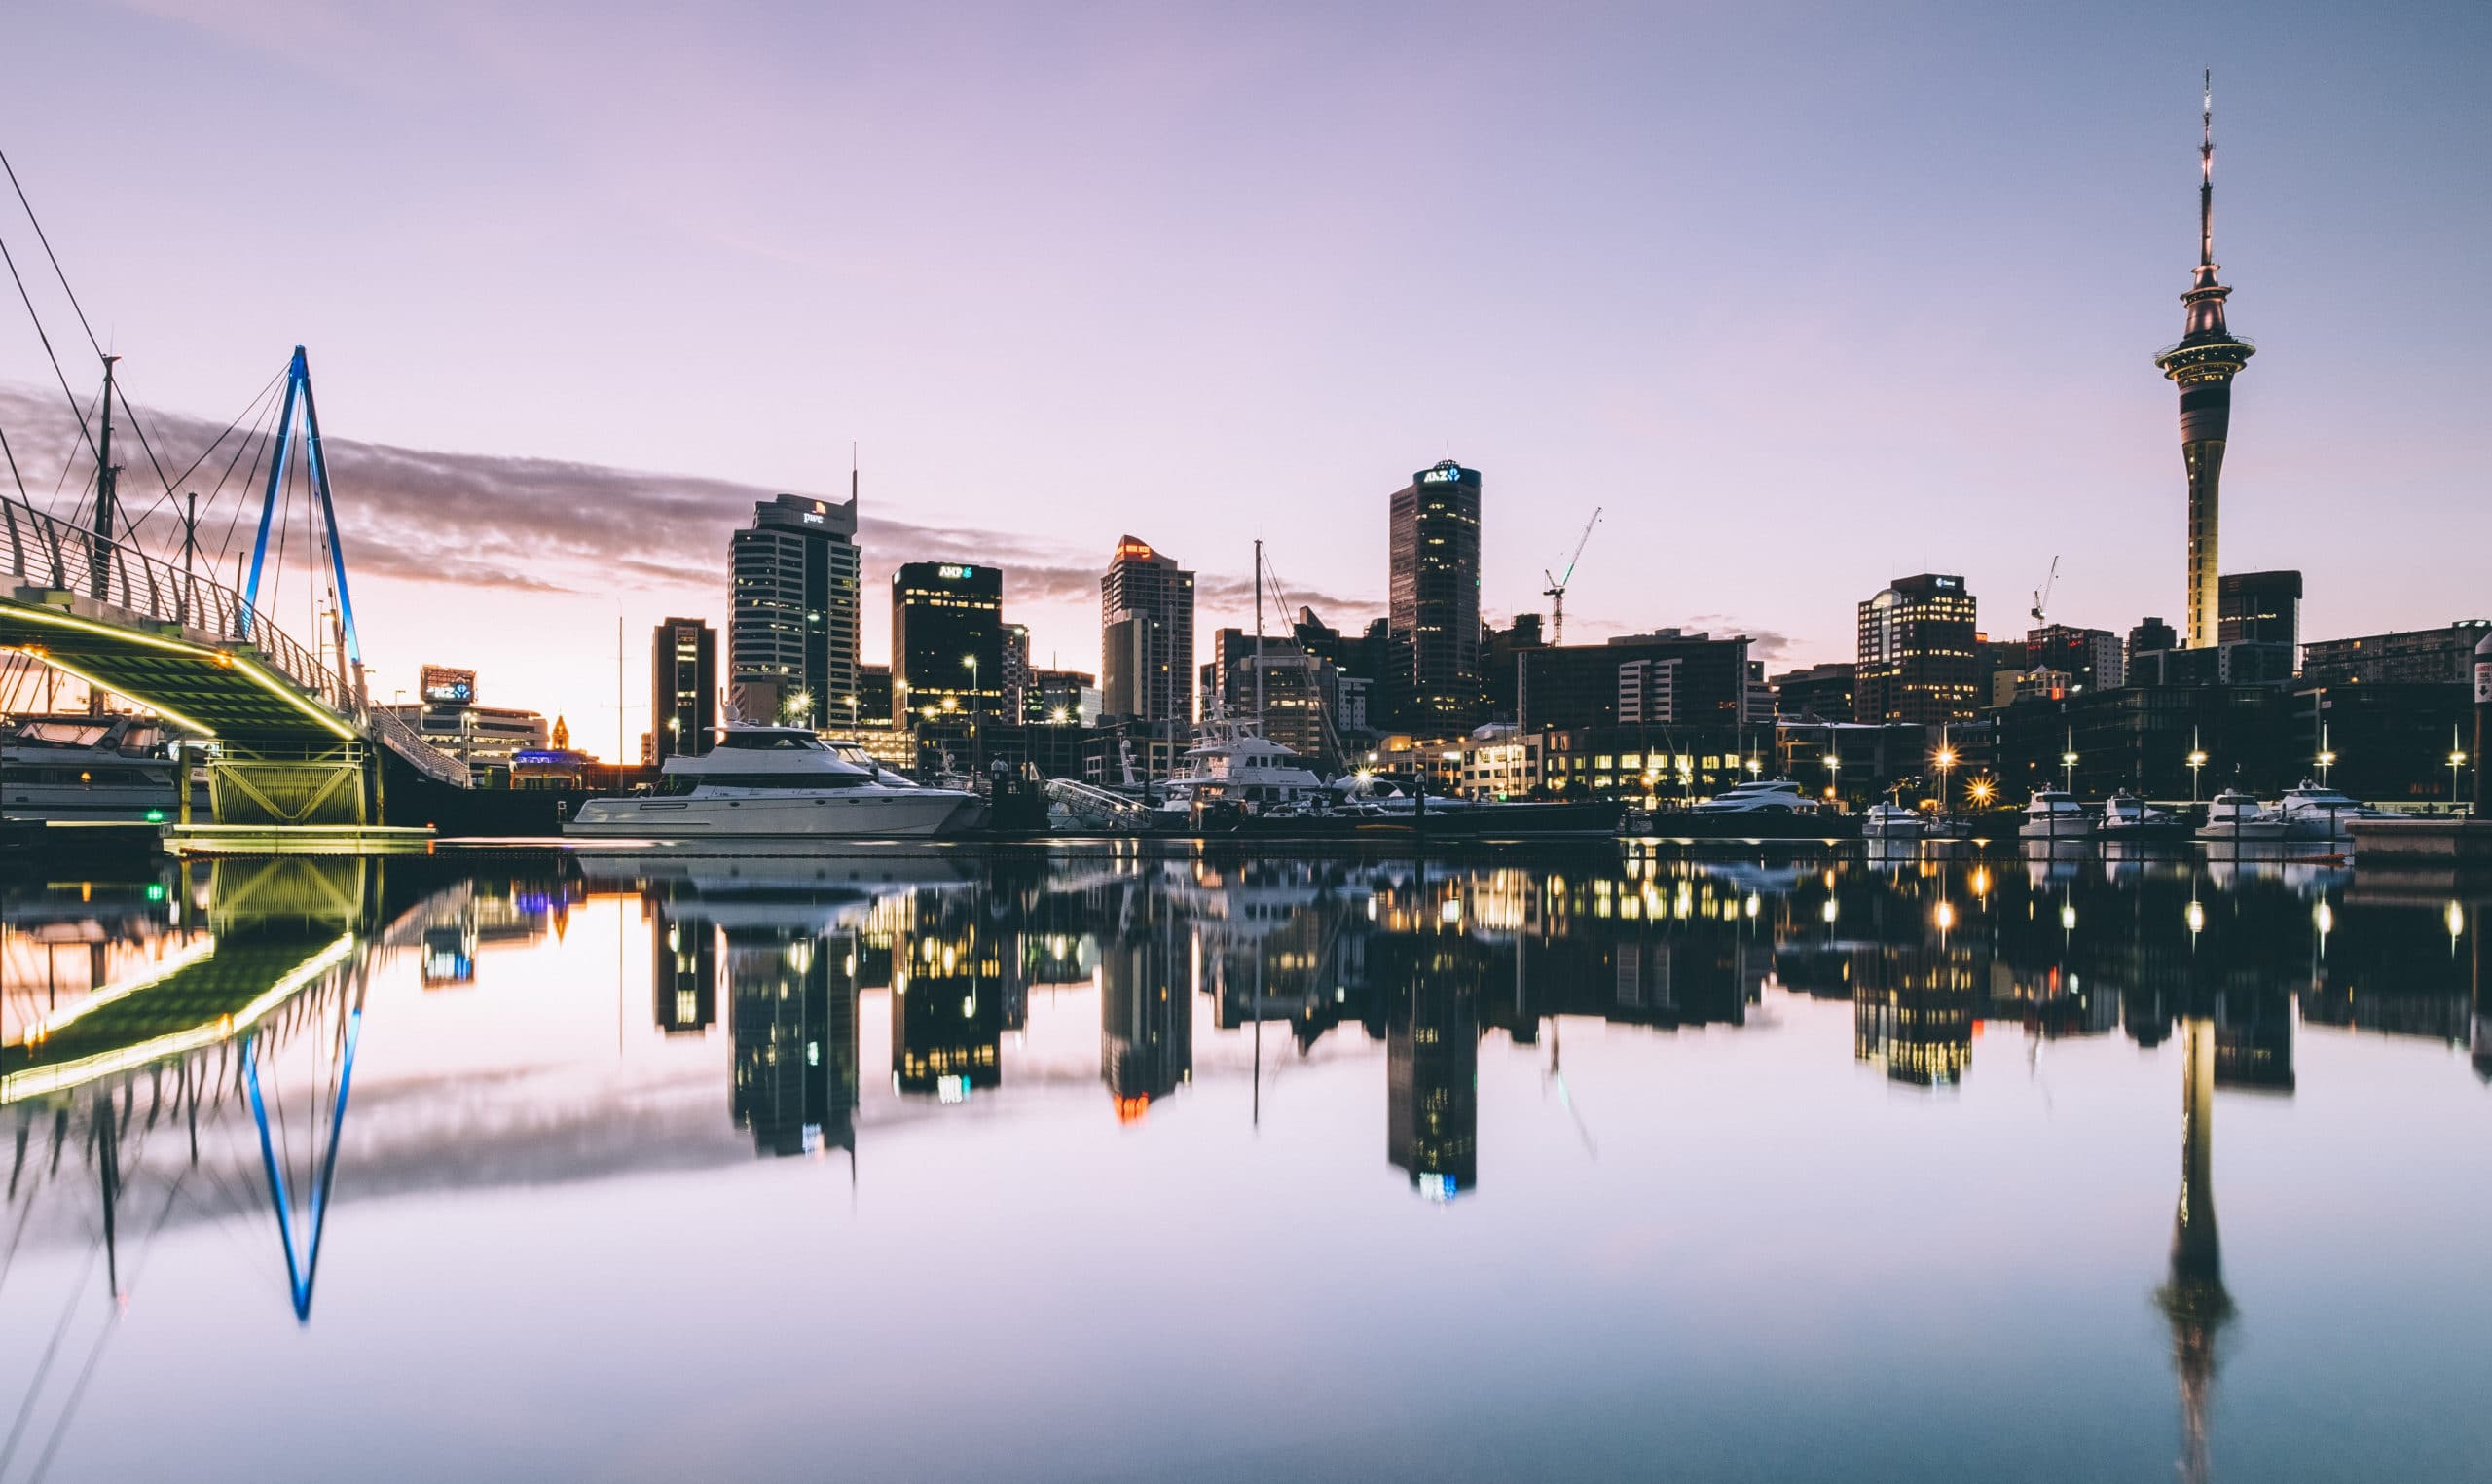 Exterior view of Auckland, New Zealand with skyline buildings with waterfront view. Has a large glowing bridge and a sunset.